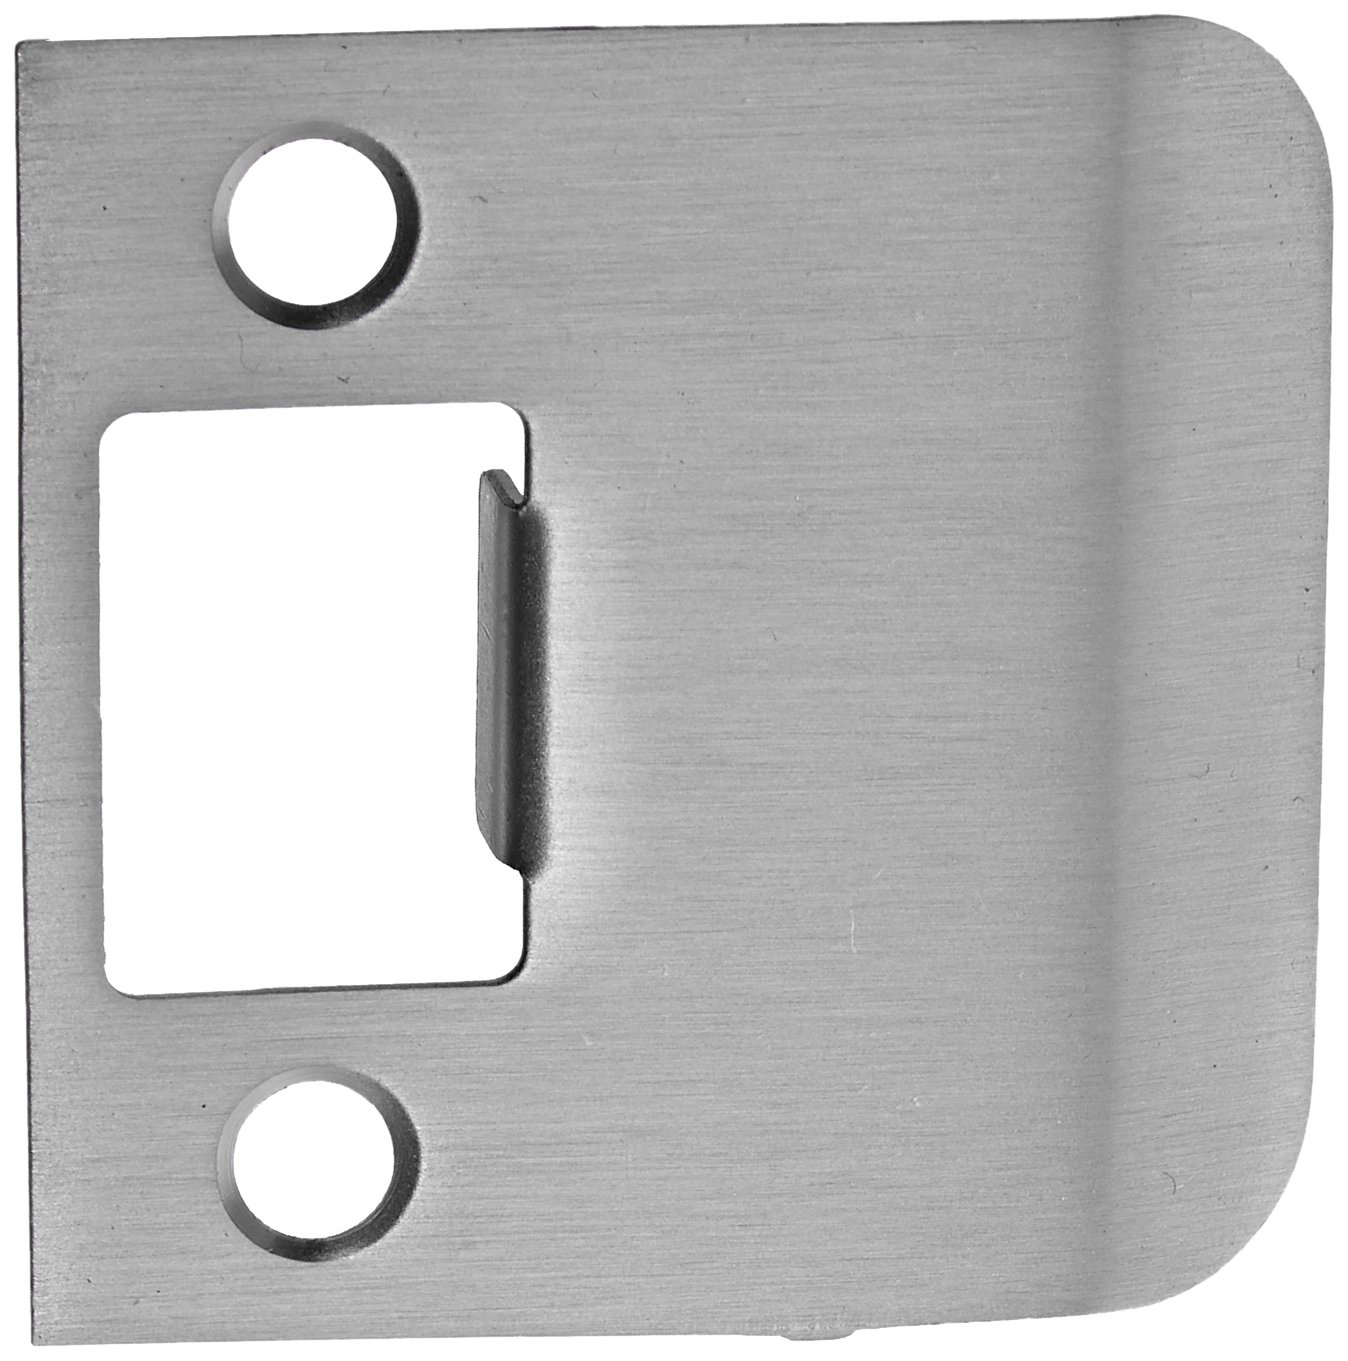 Don-Jo EL 175 18 Gauge Extended Lip Strike, Clear Coated Satin Nickel Plated, 1-3/4'' Width x 2-1/4'' Height (Pack of 10)